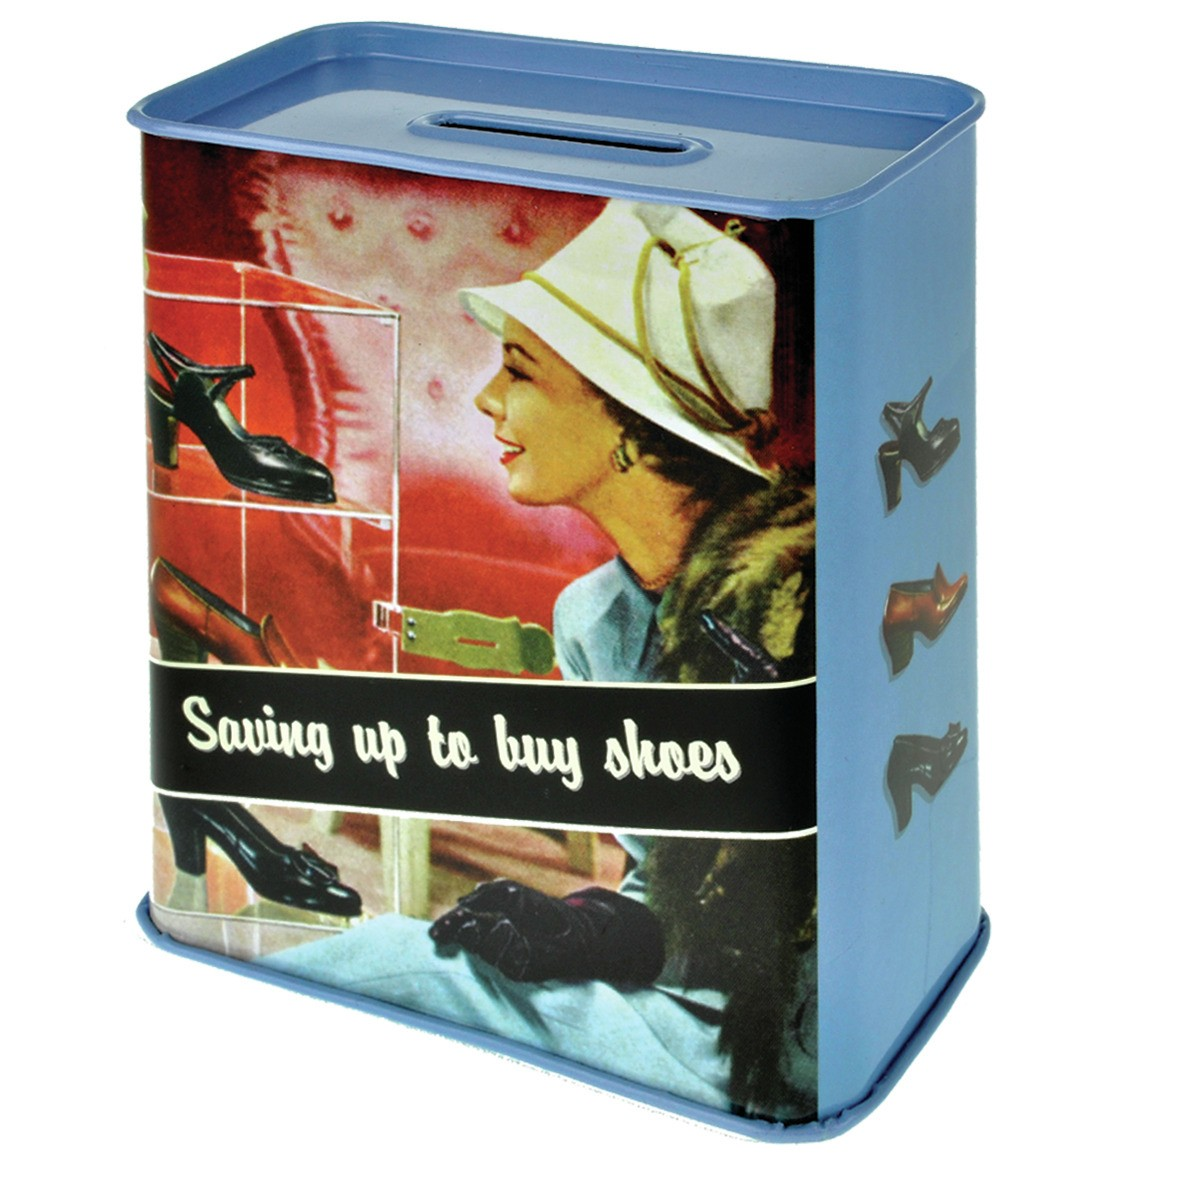 Buy Money Box Saving Up To Buy Shoes Tin Money Box For Her Kitschagogo